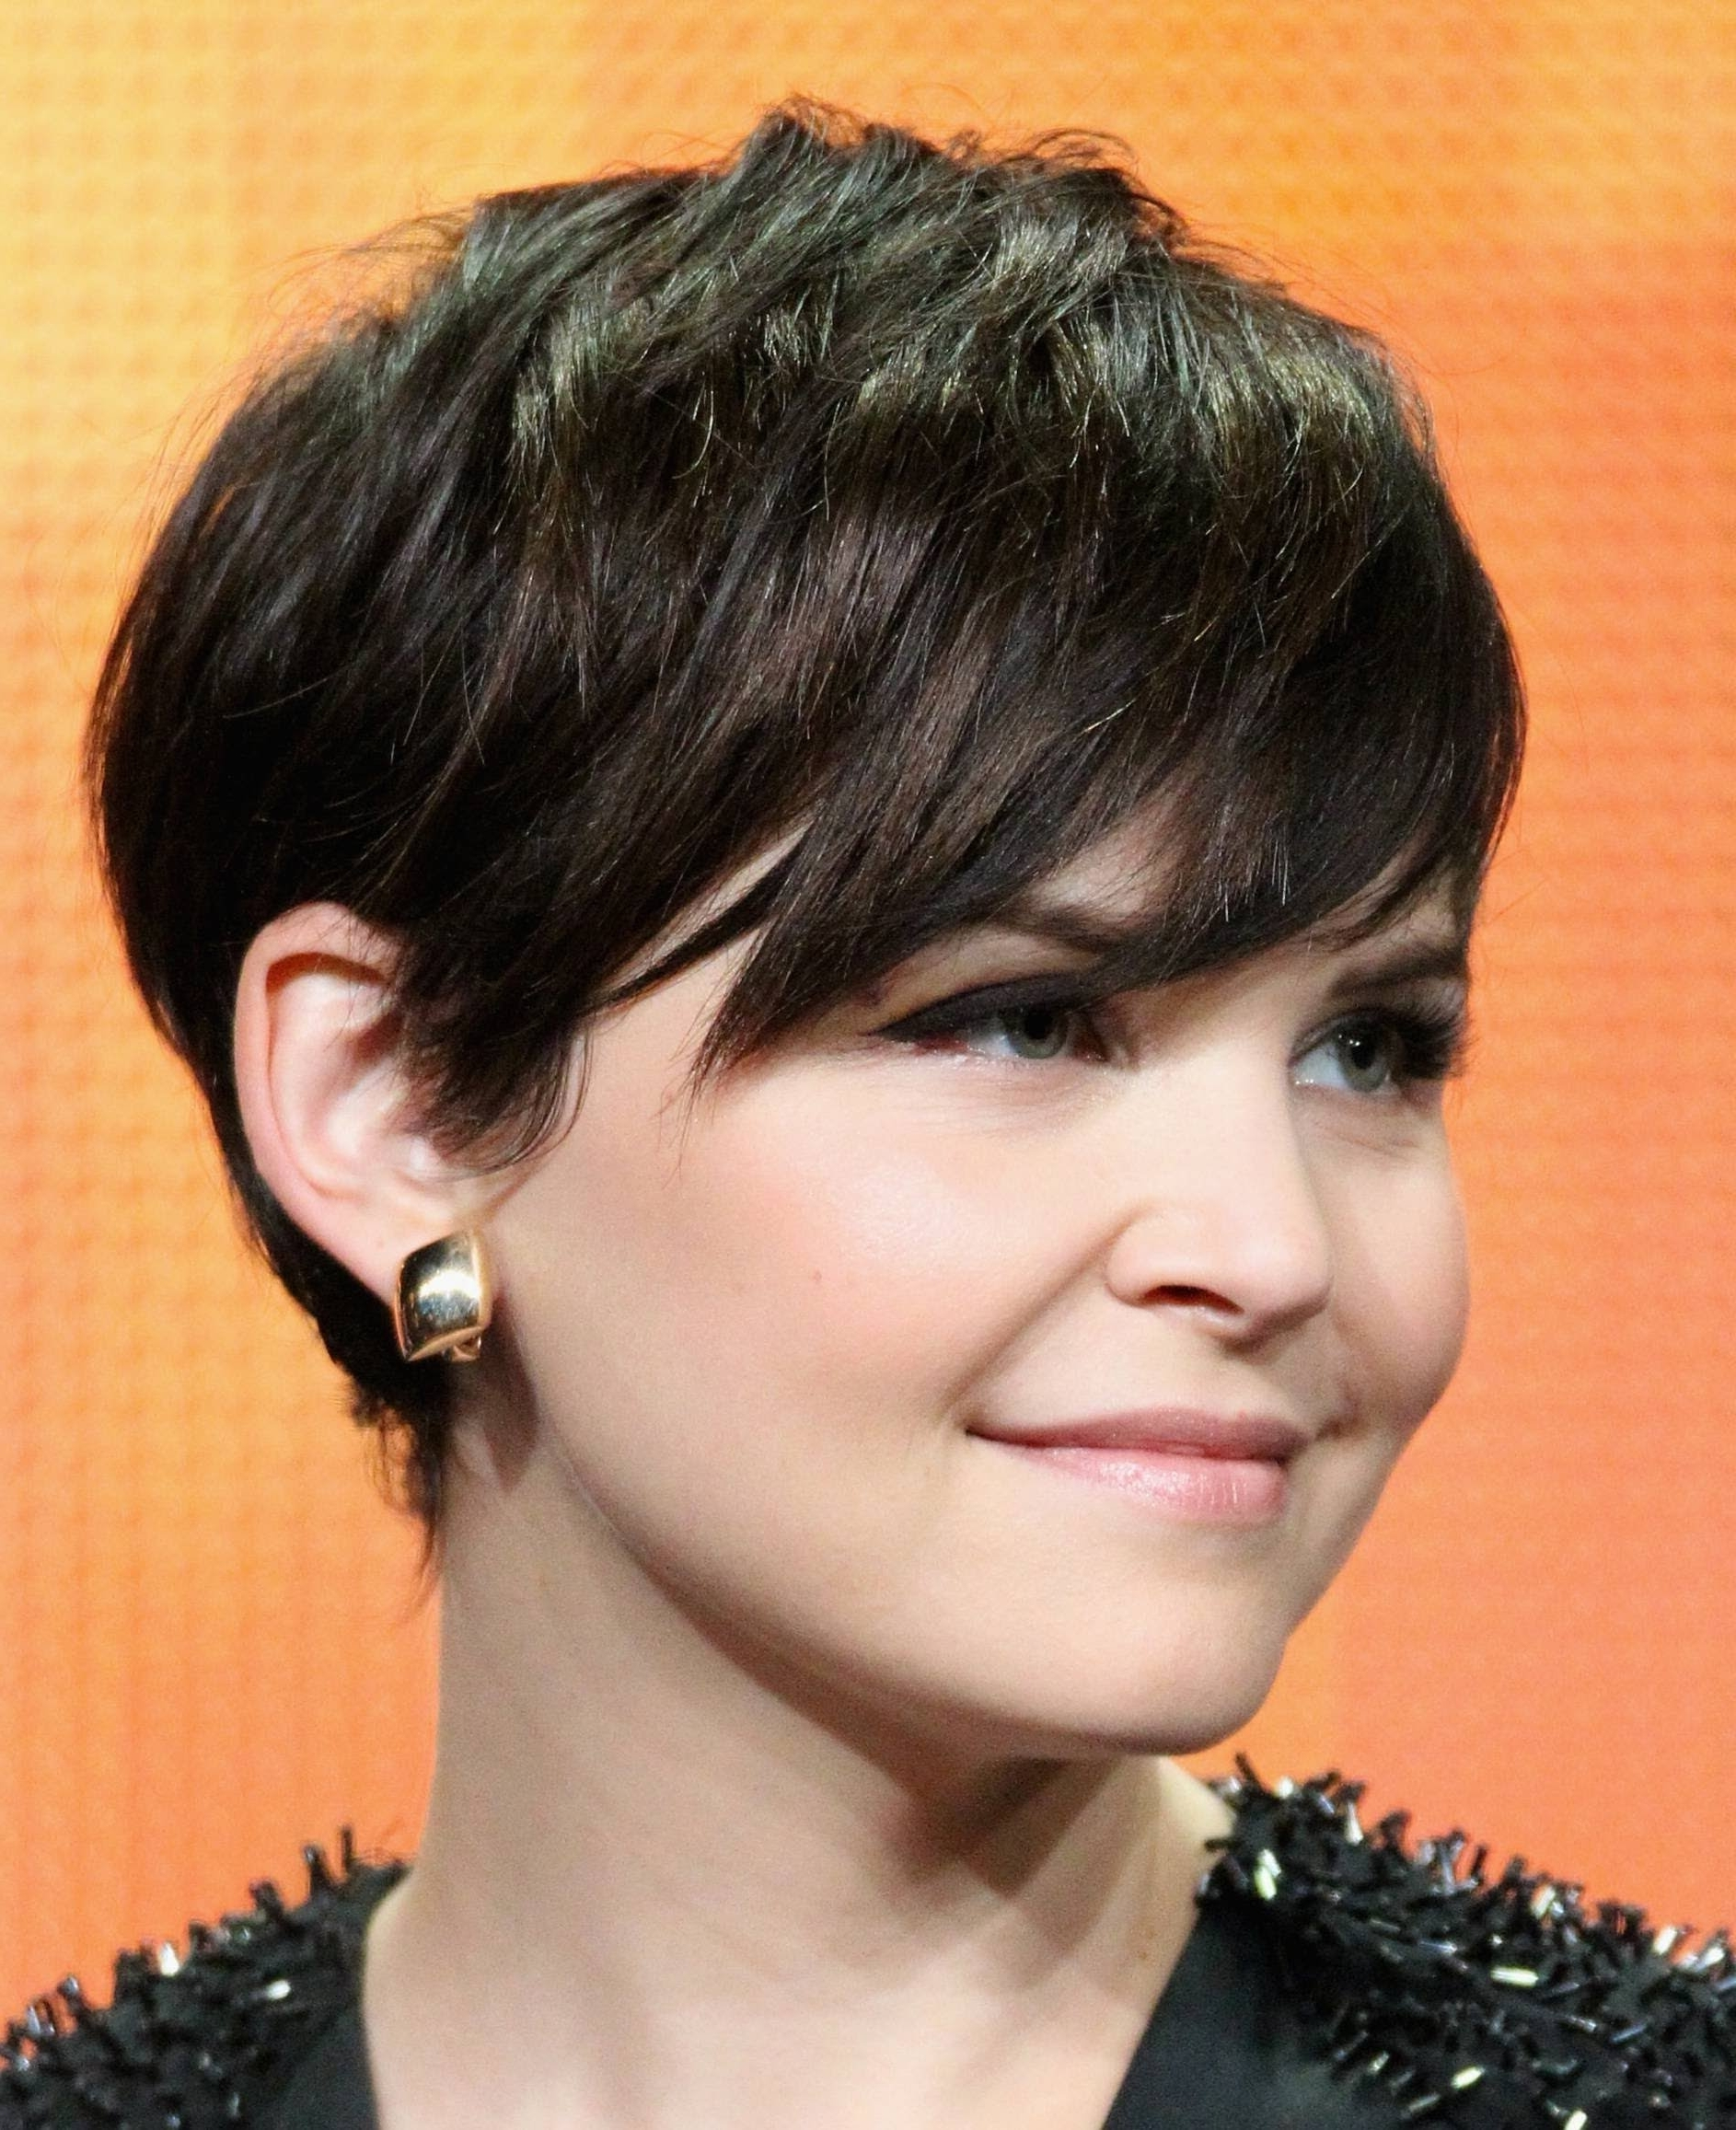 Ginnifer Goodwin Pixie Haircut Tutorial | The Salon Guy – Youtube For Most Recently Crop Pixie Hairstyles (Gallery 10 of 15)